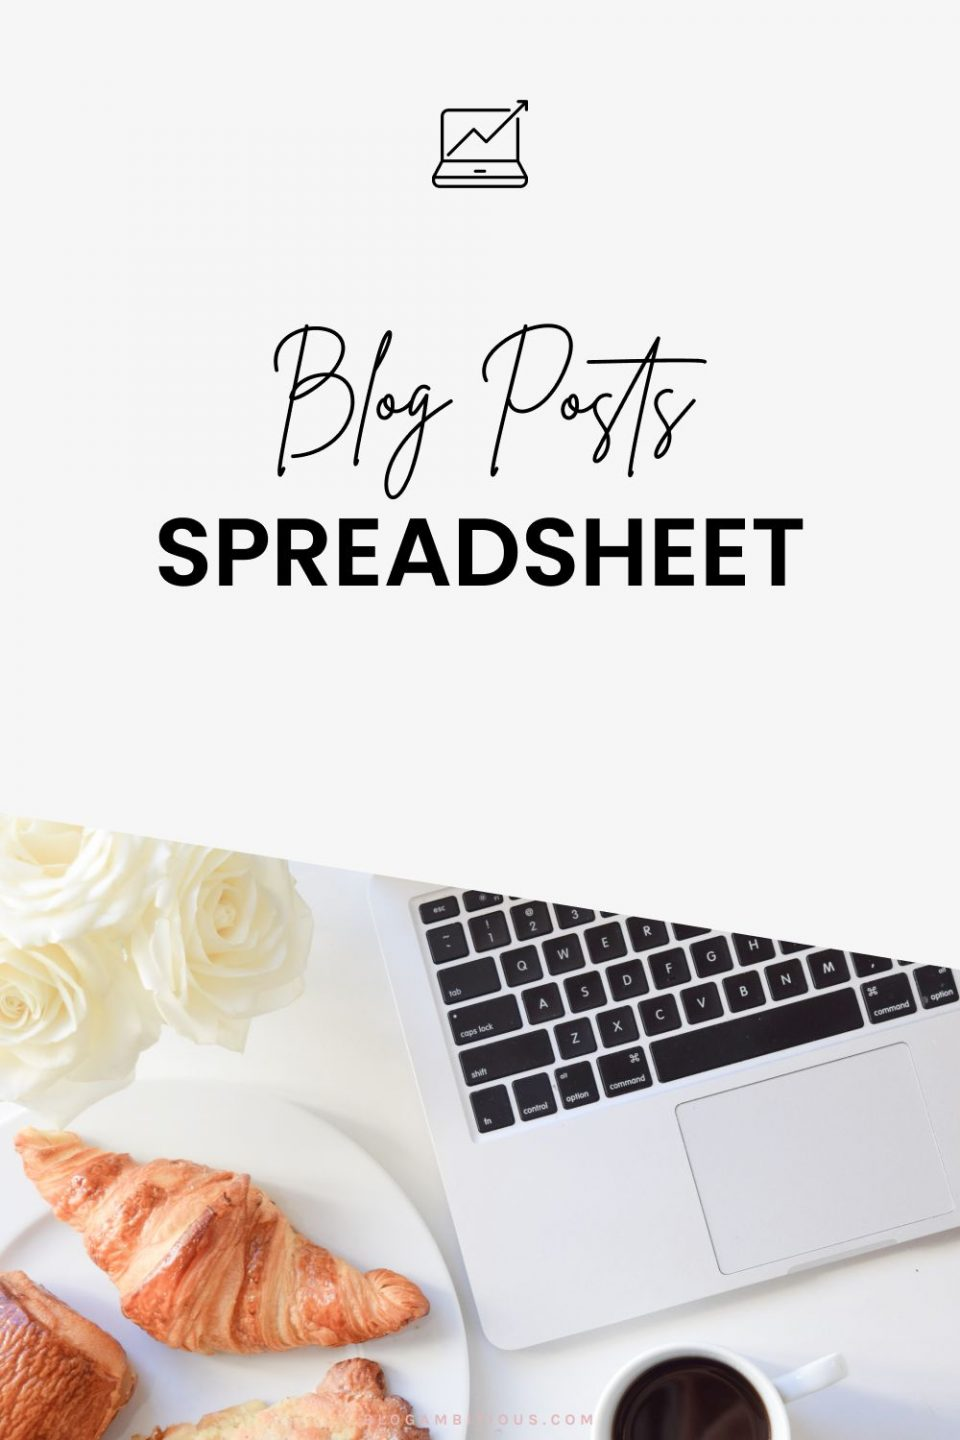 How To Keep an Automated List of Your Blog Posts in a Google Spreadsheet